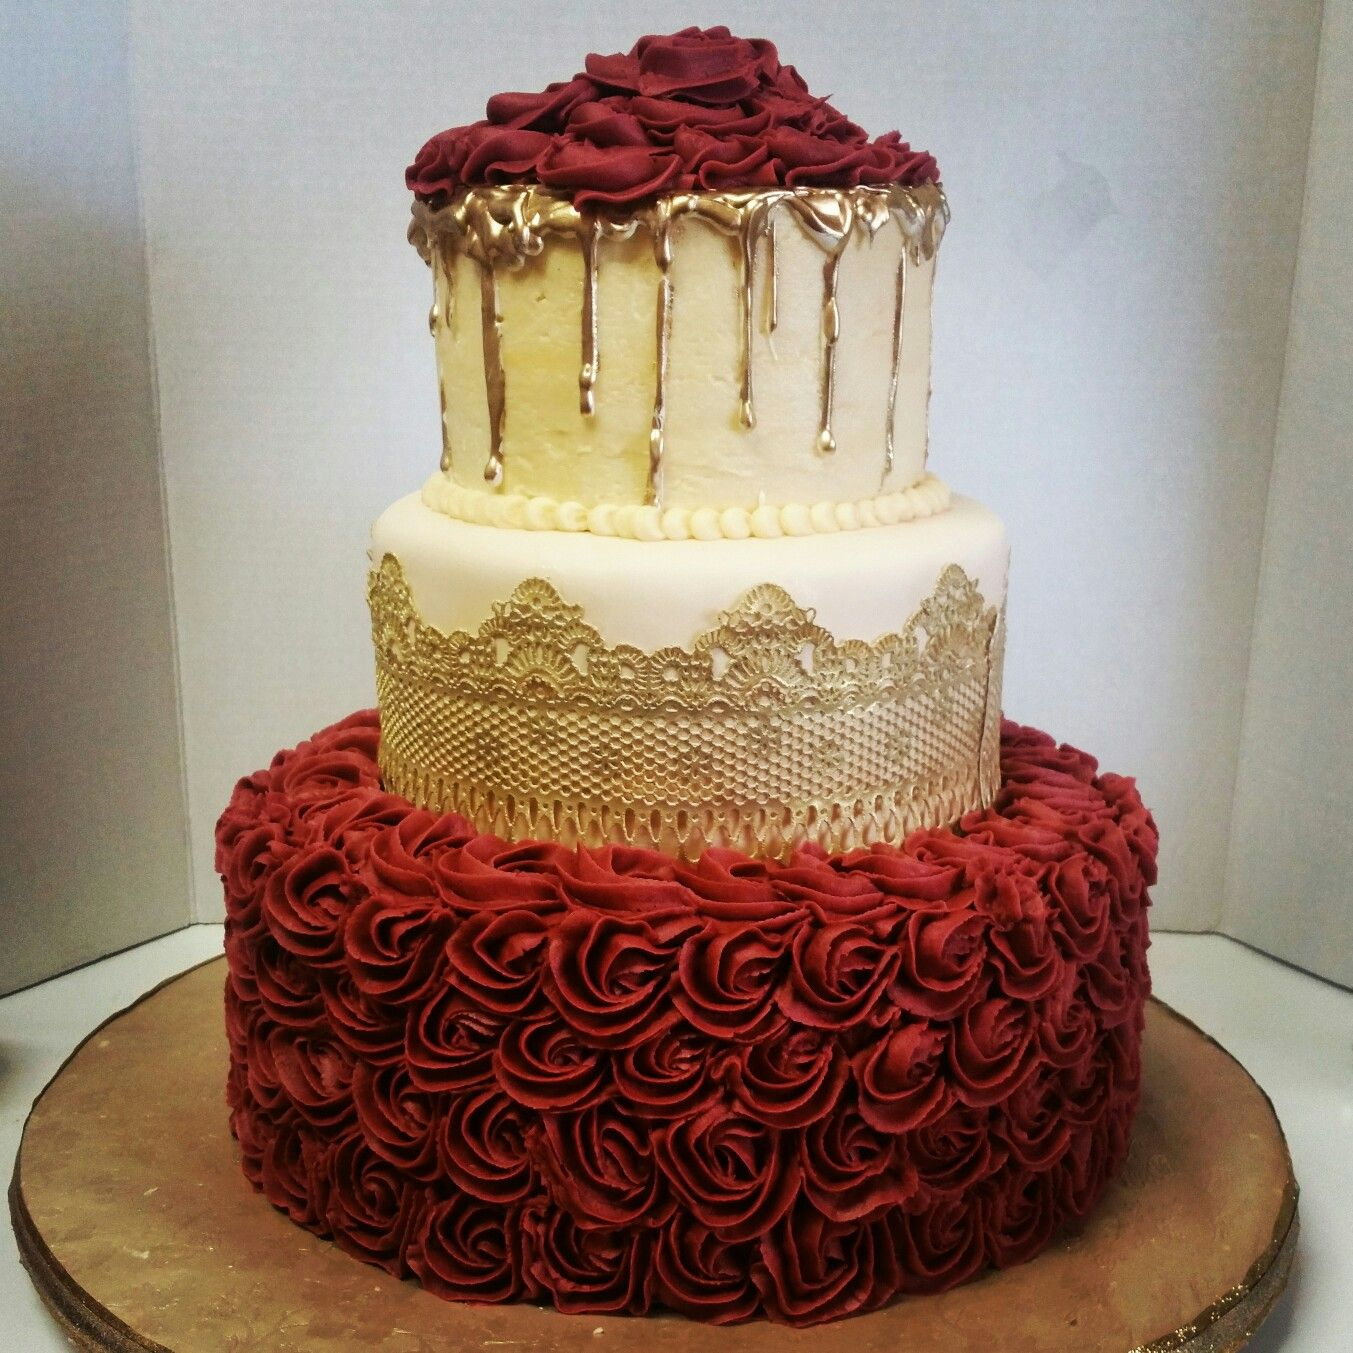 Gold Wedding Cake Decorations: My Cakes ...FB/Cakes By Msvickie